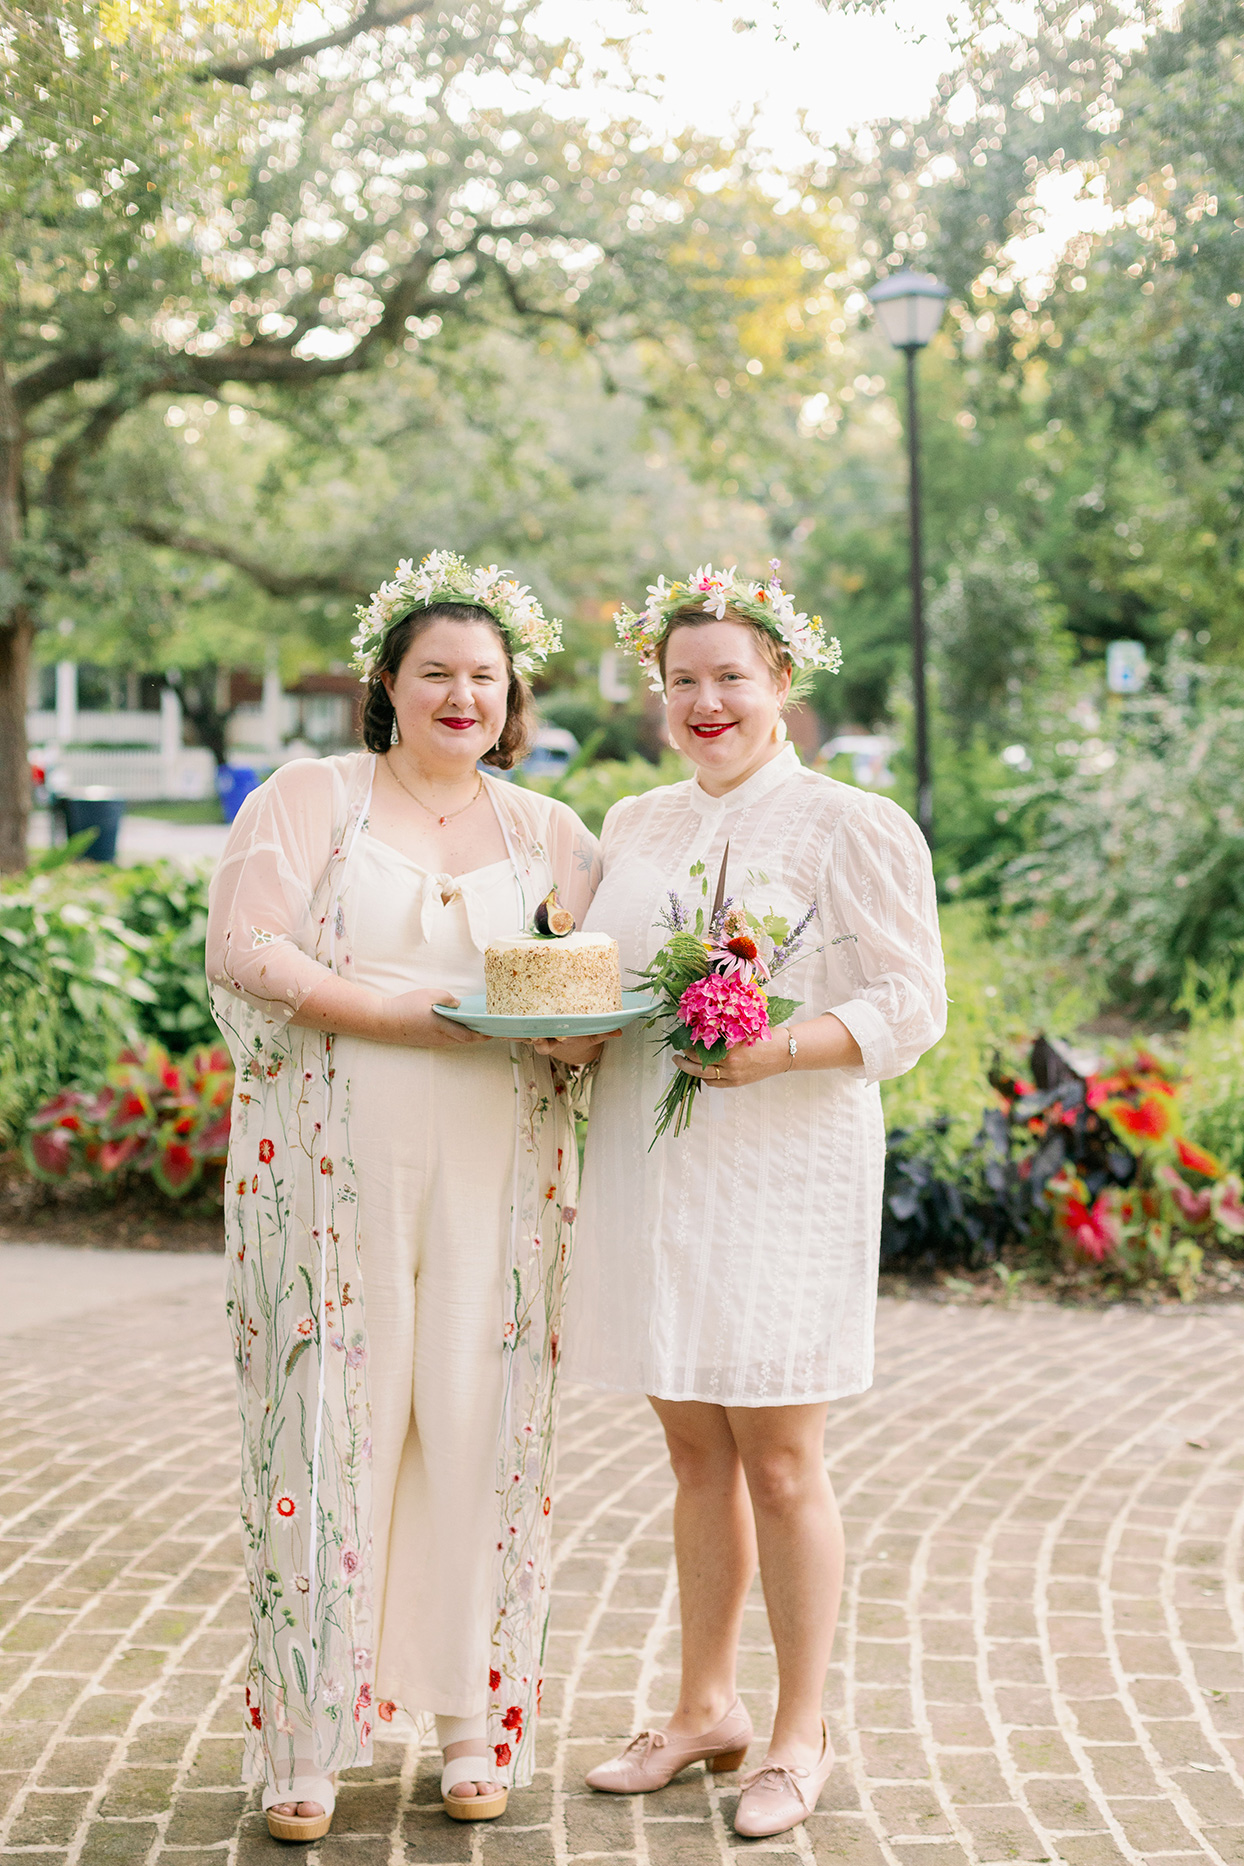 brides smiling holding cake and flowers